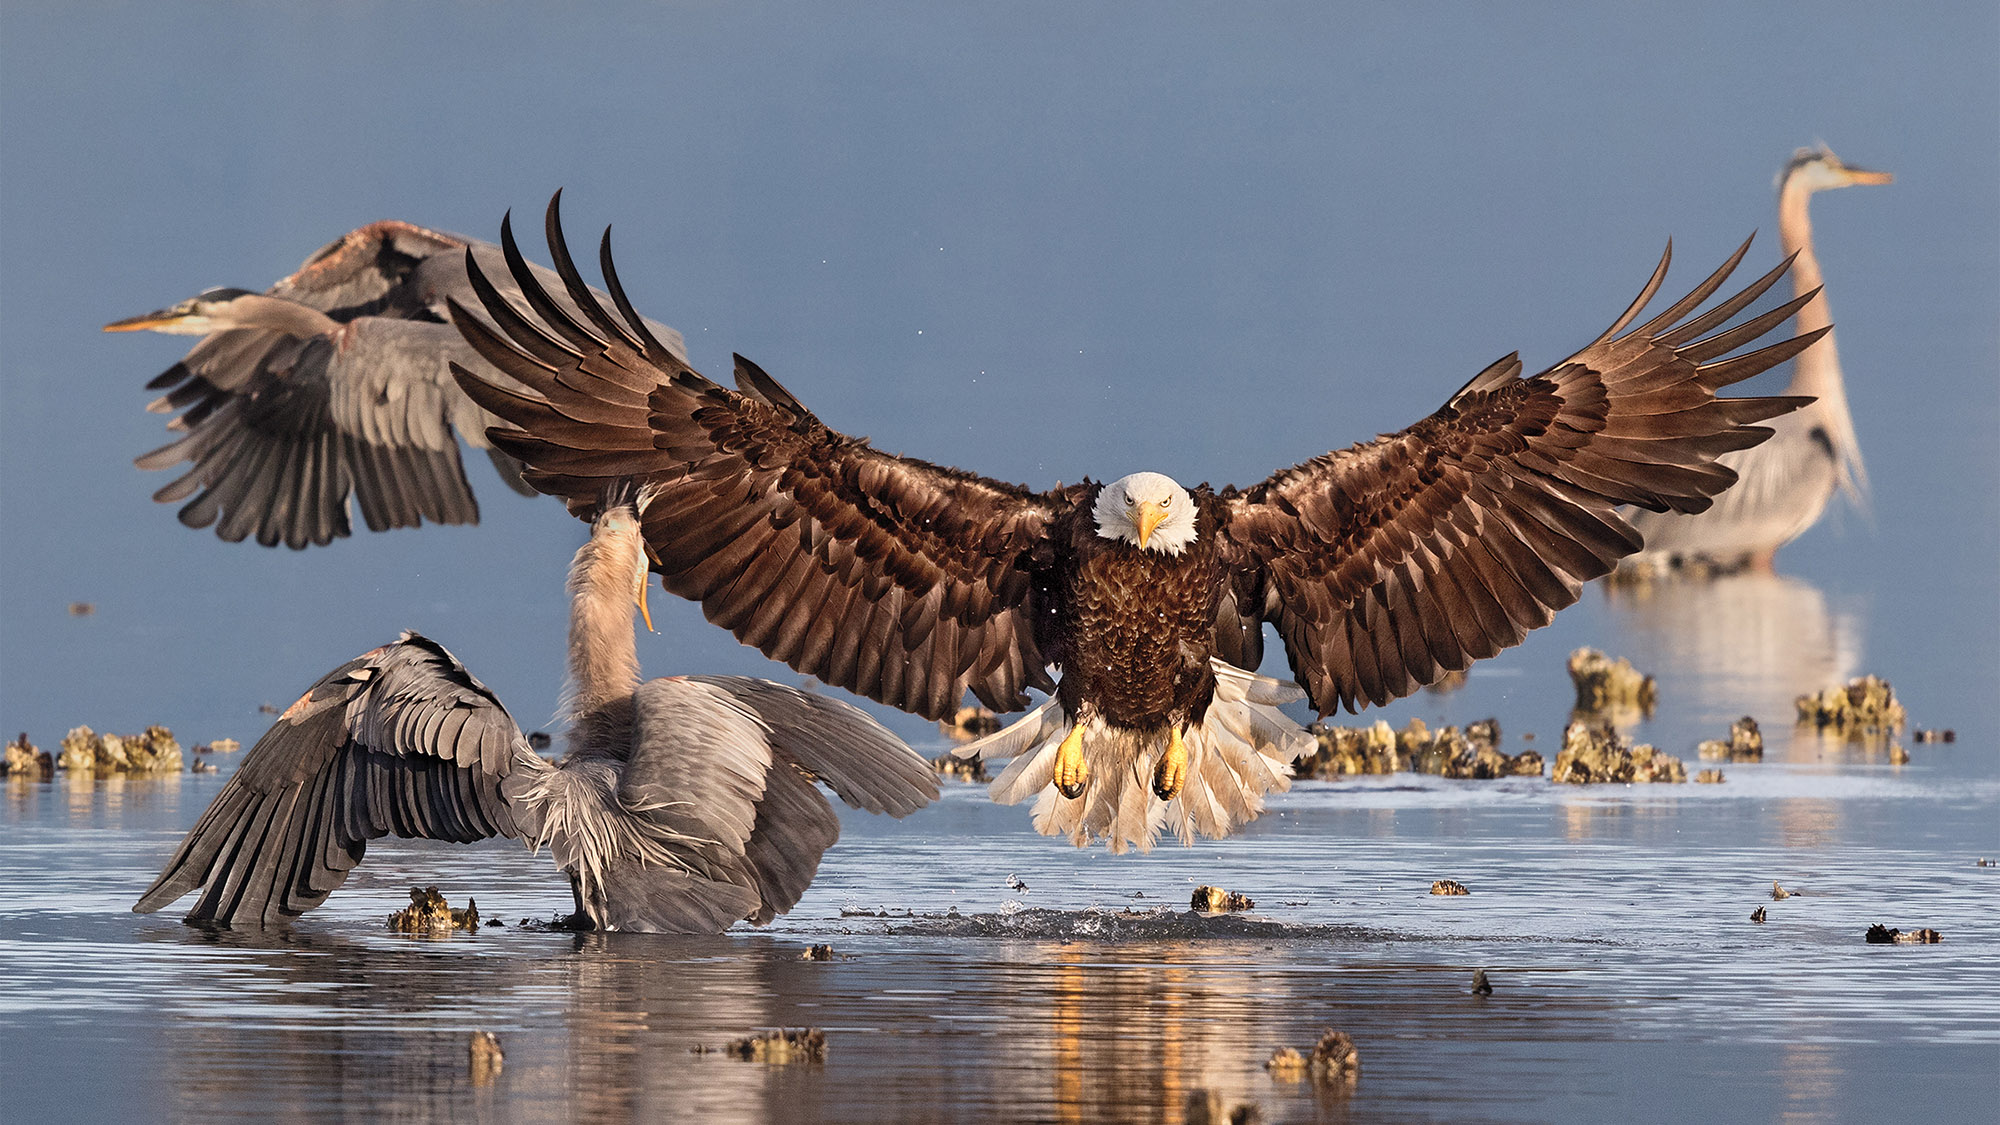 The Bald Eagle fights with heron for fish.